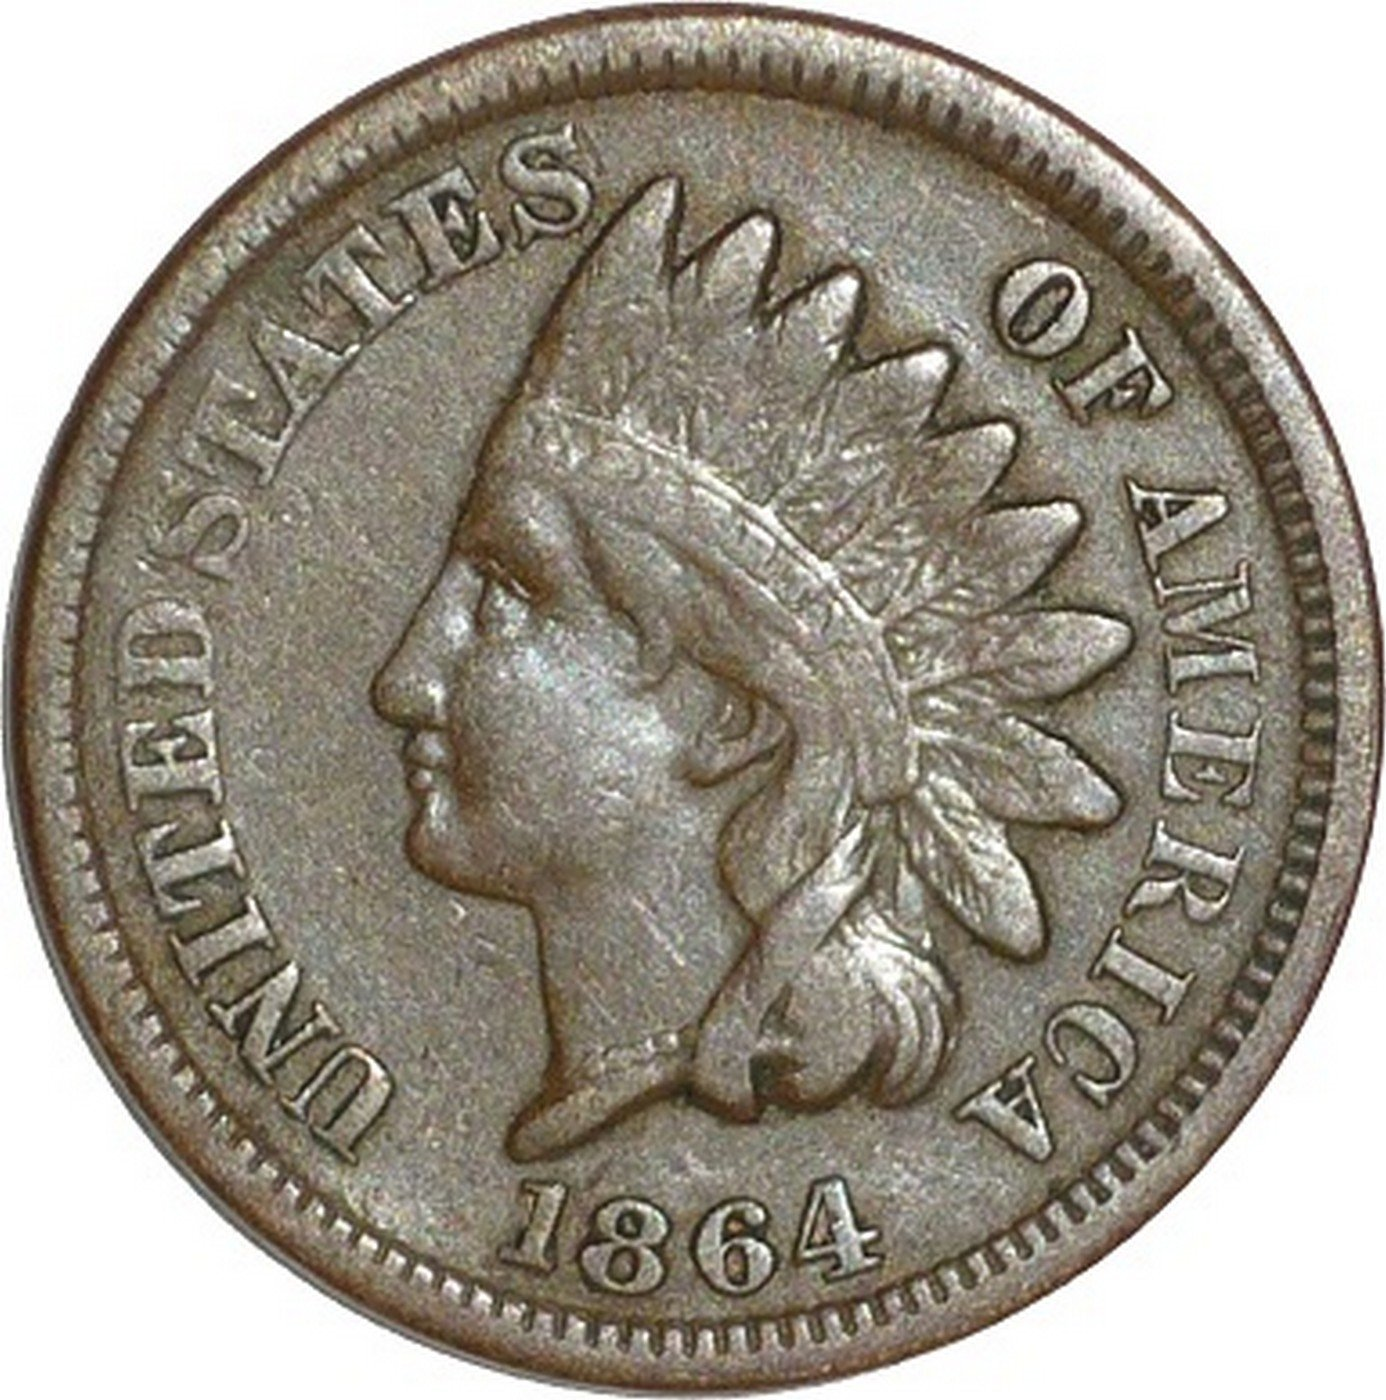 1864 No-L ROT-001 - Indian Head Penny - Photo by David Poliquin